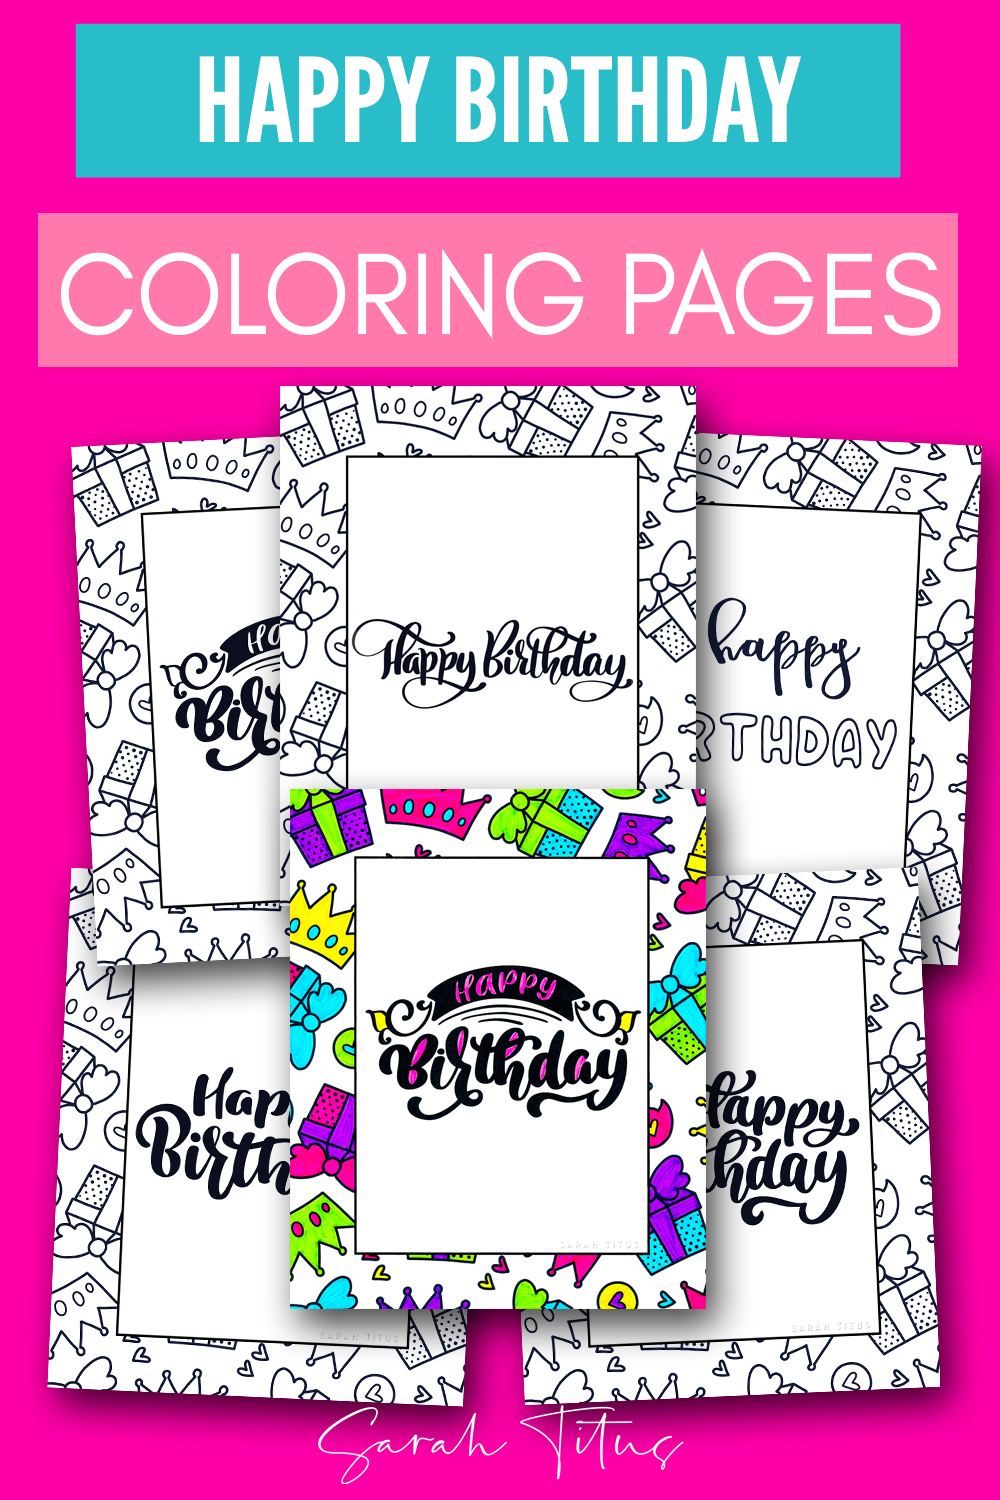 60 Best Free Printable Happy Birthday Coloring Sheets Stickers Cards Gift Tags And More Sarah Titus From Homeless To 8 Figures